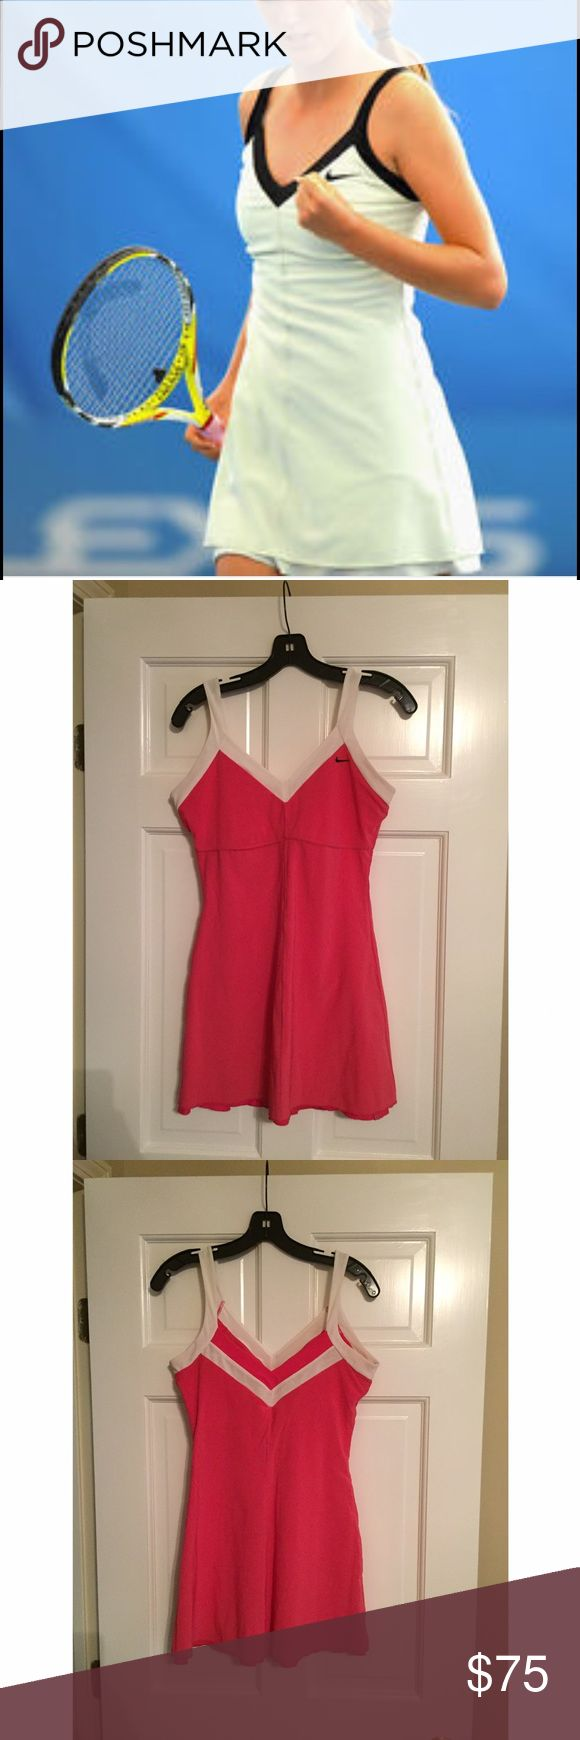 Pink & White Nike Tennis Dress This tennis dress is so cute! It has a built in bra and is so comfortable. I absolutely love it but it no longer fits me. No flaws. In excellent condition! Will consider any reasonable offers 😊 Nike Dresses